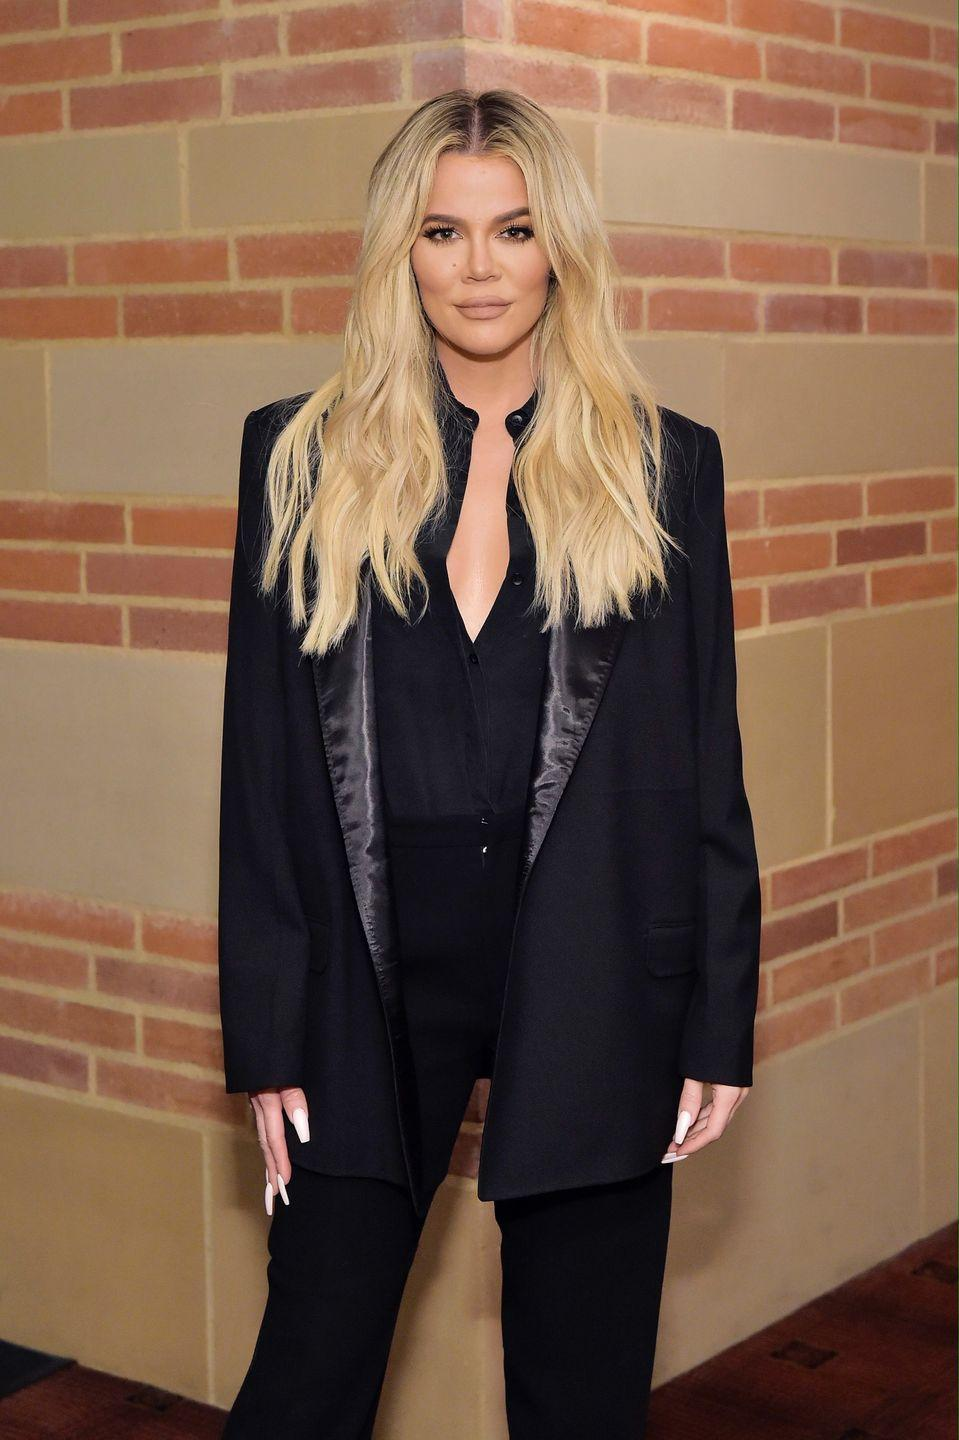 """<p><a href=""""https://www.healthista.com/celebrity-nutrition-secrets-khloe-kardashians-diet-revealed-nutritionist/"""" rel=""""nofollow noopener"""" target=""""_blank"""" data-ylk=""""slk:Every morning"""" class=""""link rapid-noclick-resp"""">Every morning</a>, Khloé has a hearty post-workout breakfast of two eggs, a cup of oatmeal, and a cup of fruit. </p>"""